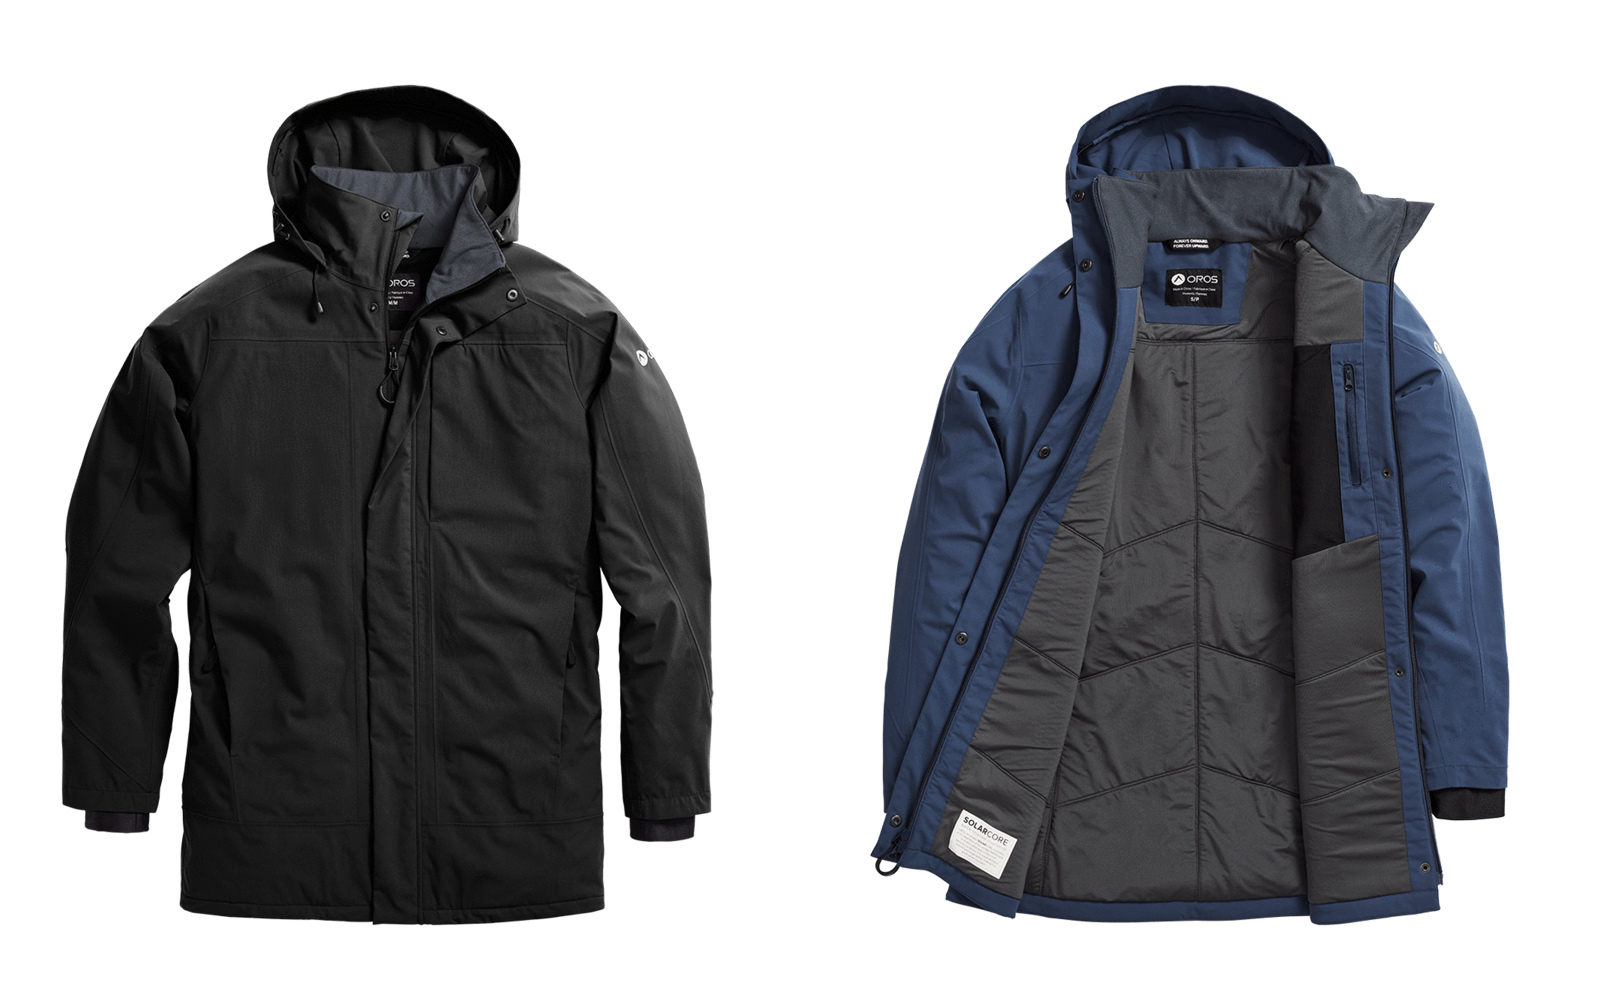 bcc9441b84 The Best Packable Travel Jackets